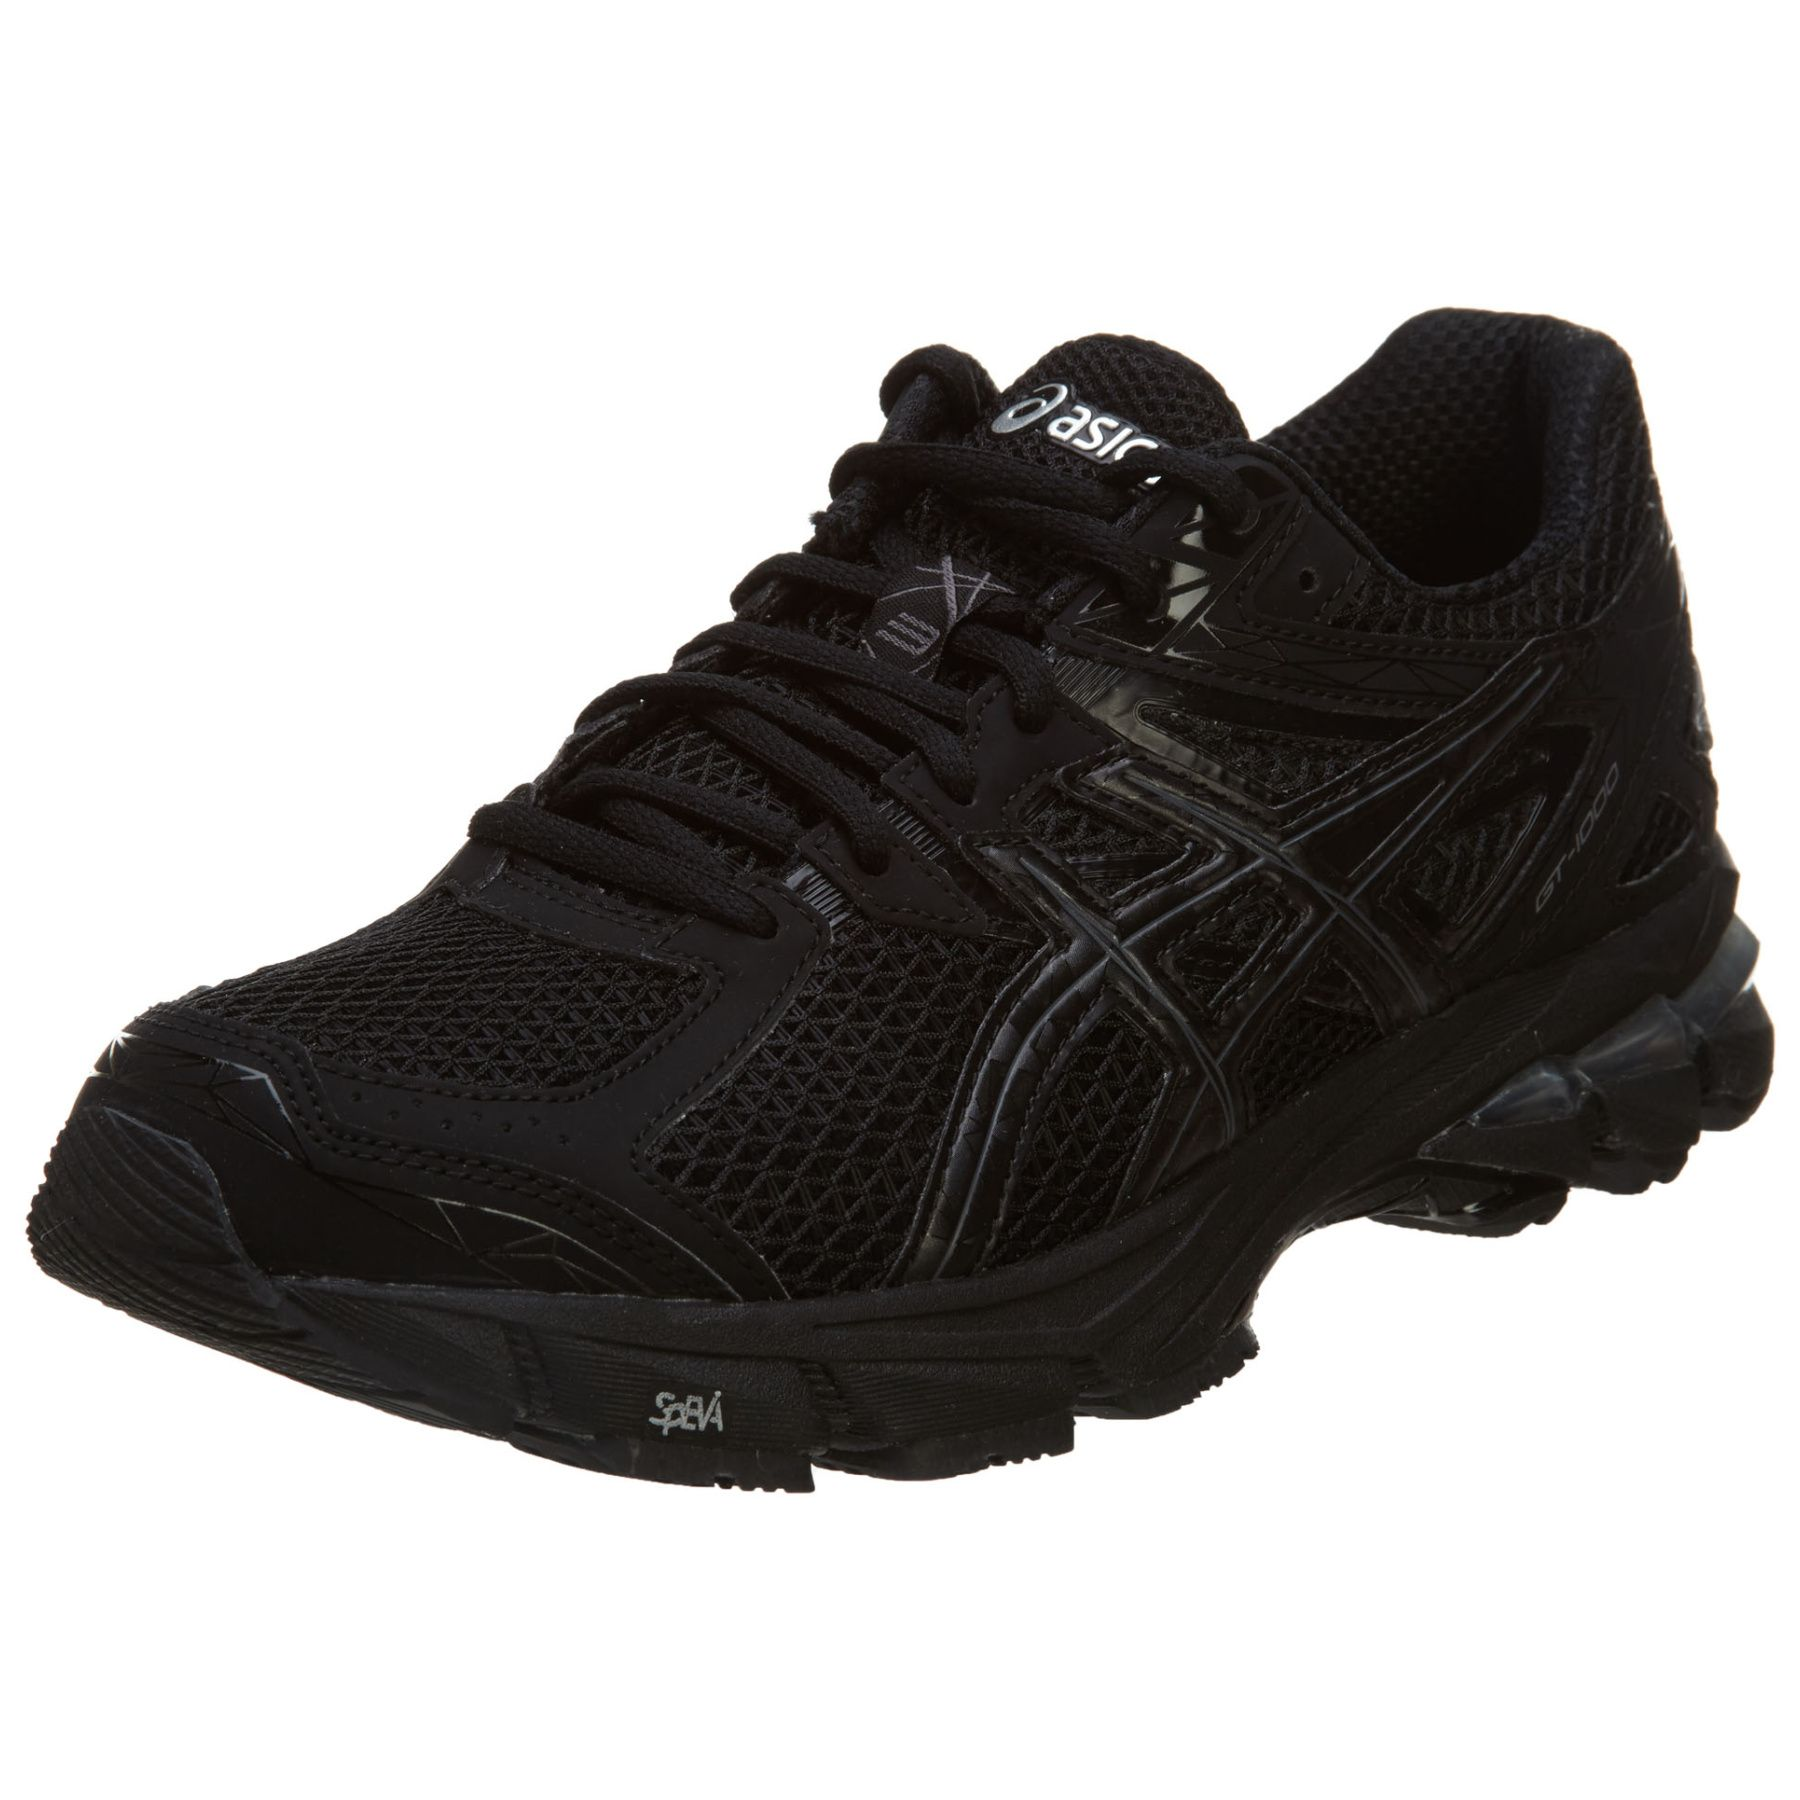 half off new collection better Asics Gt-1000 3 Womens Style: T4k8n-9099 Size: 8 M Us